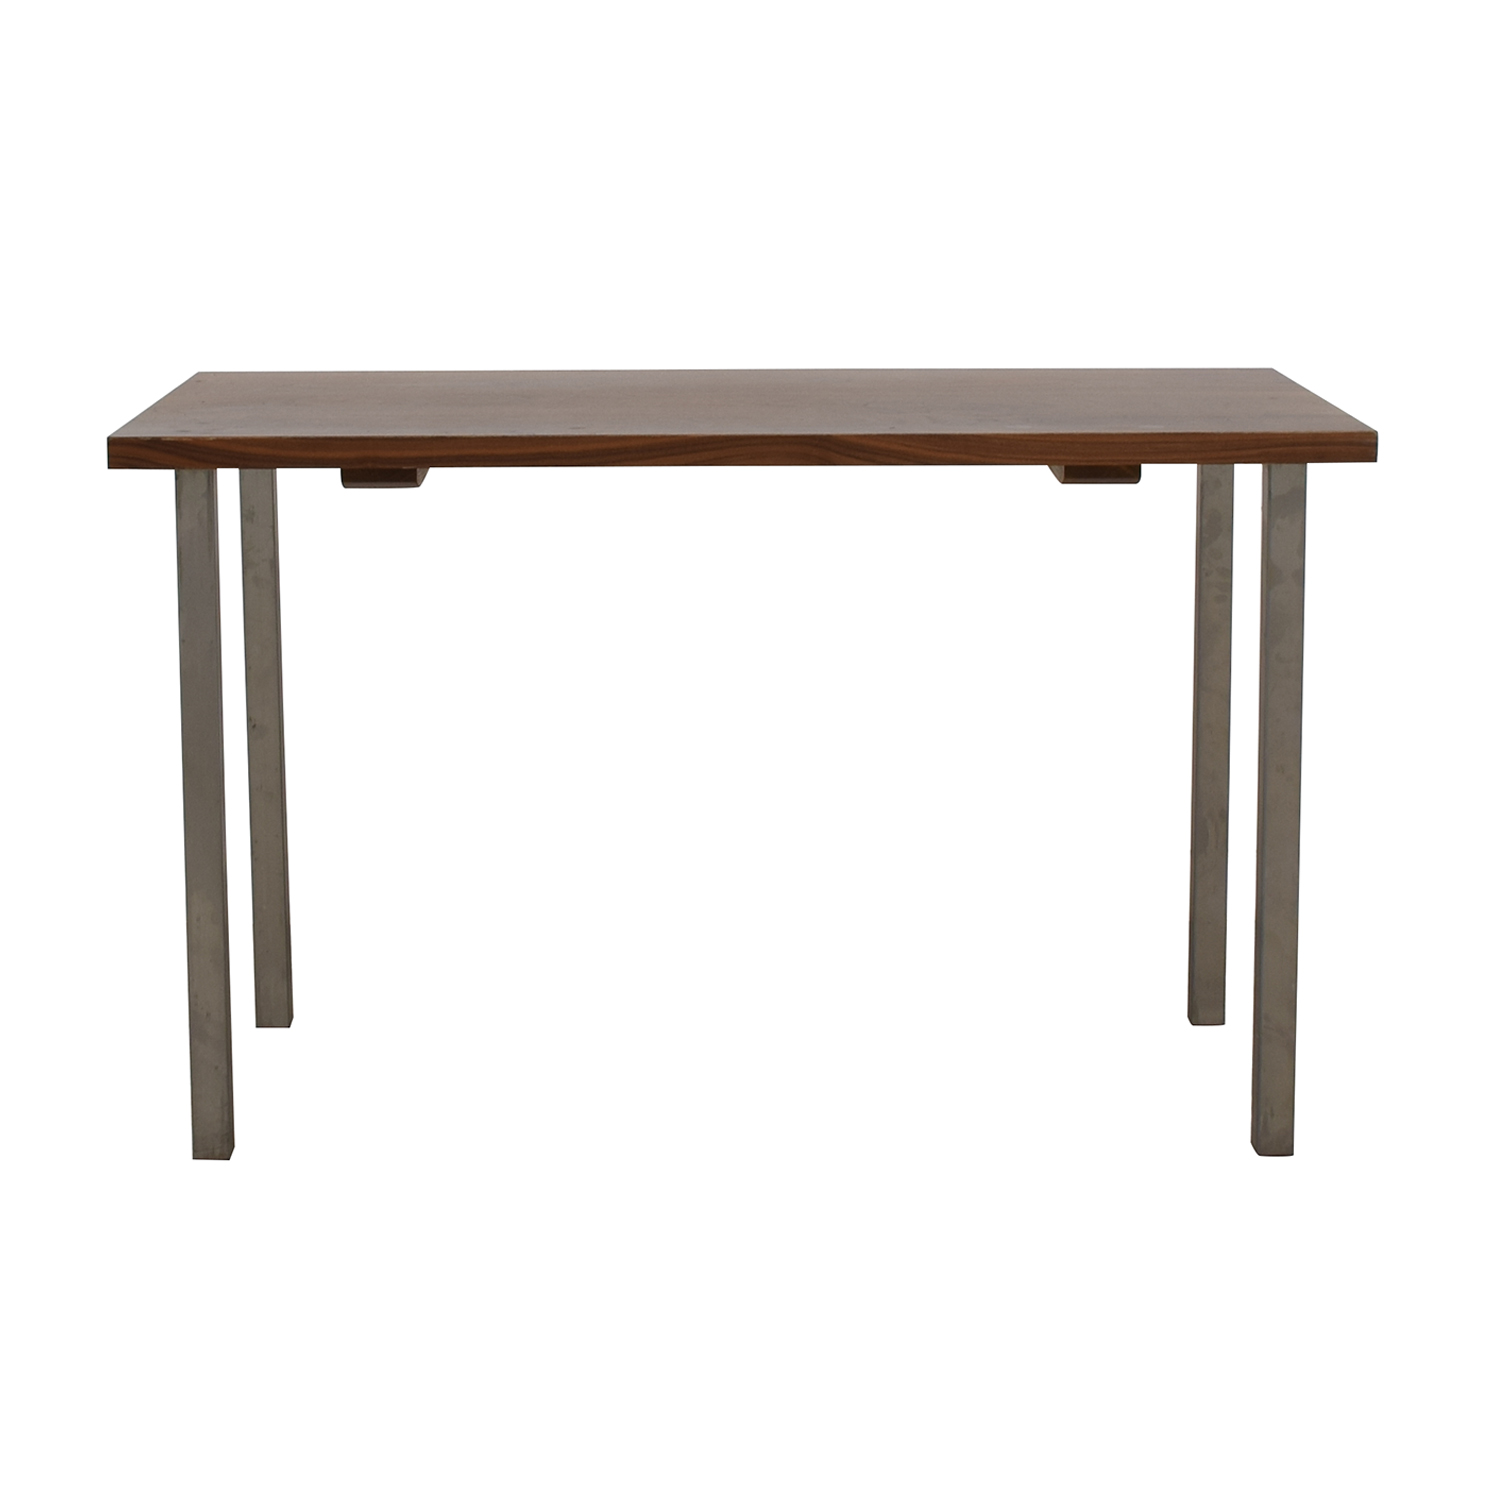 Room & Board Room & Board Rand Natural Wood and Steel Table on sale